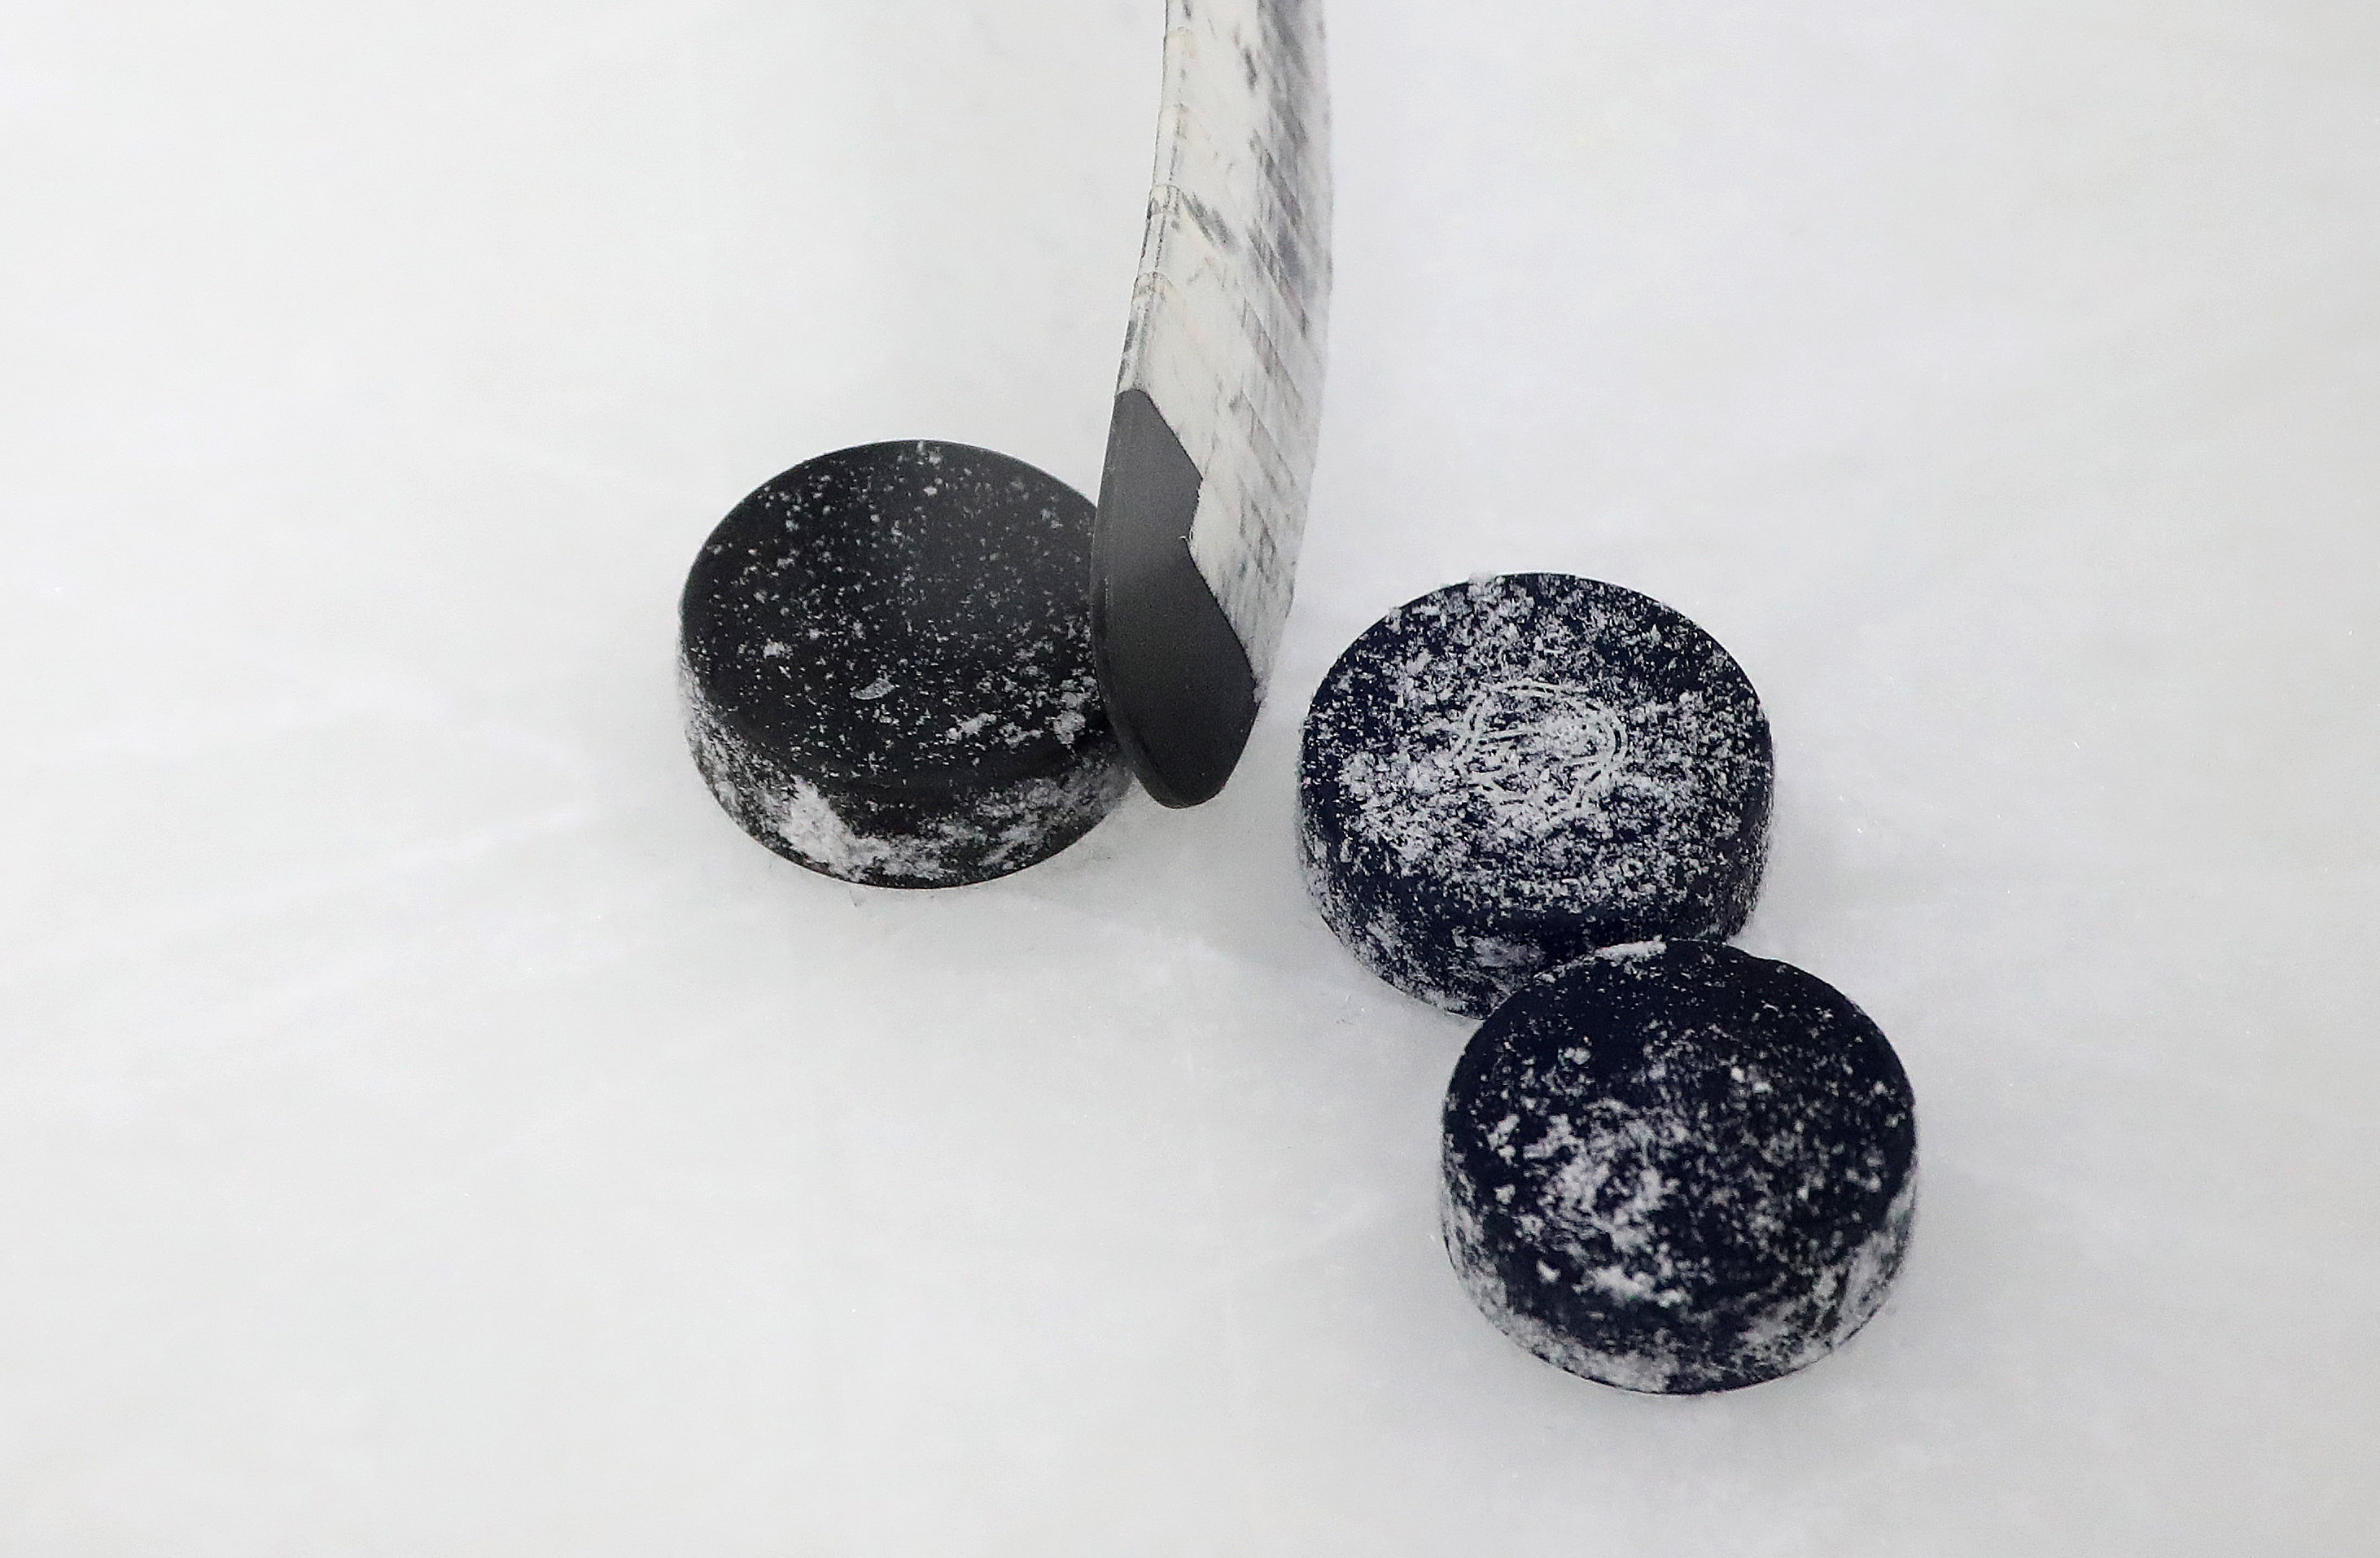 The Toronto Maple Leafs hold their prospects development camp